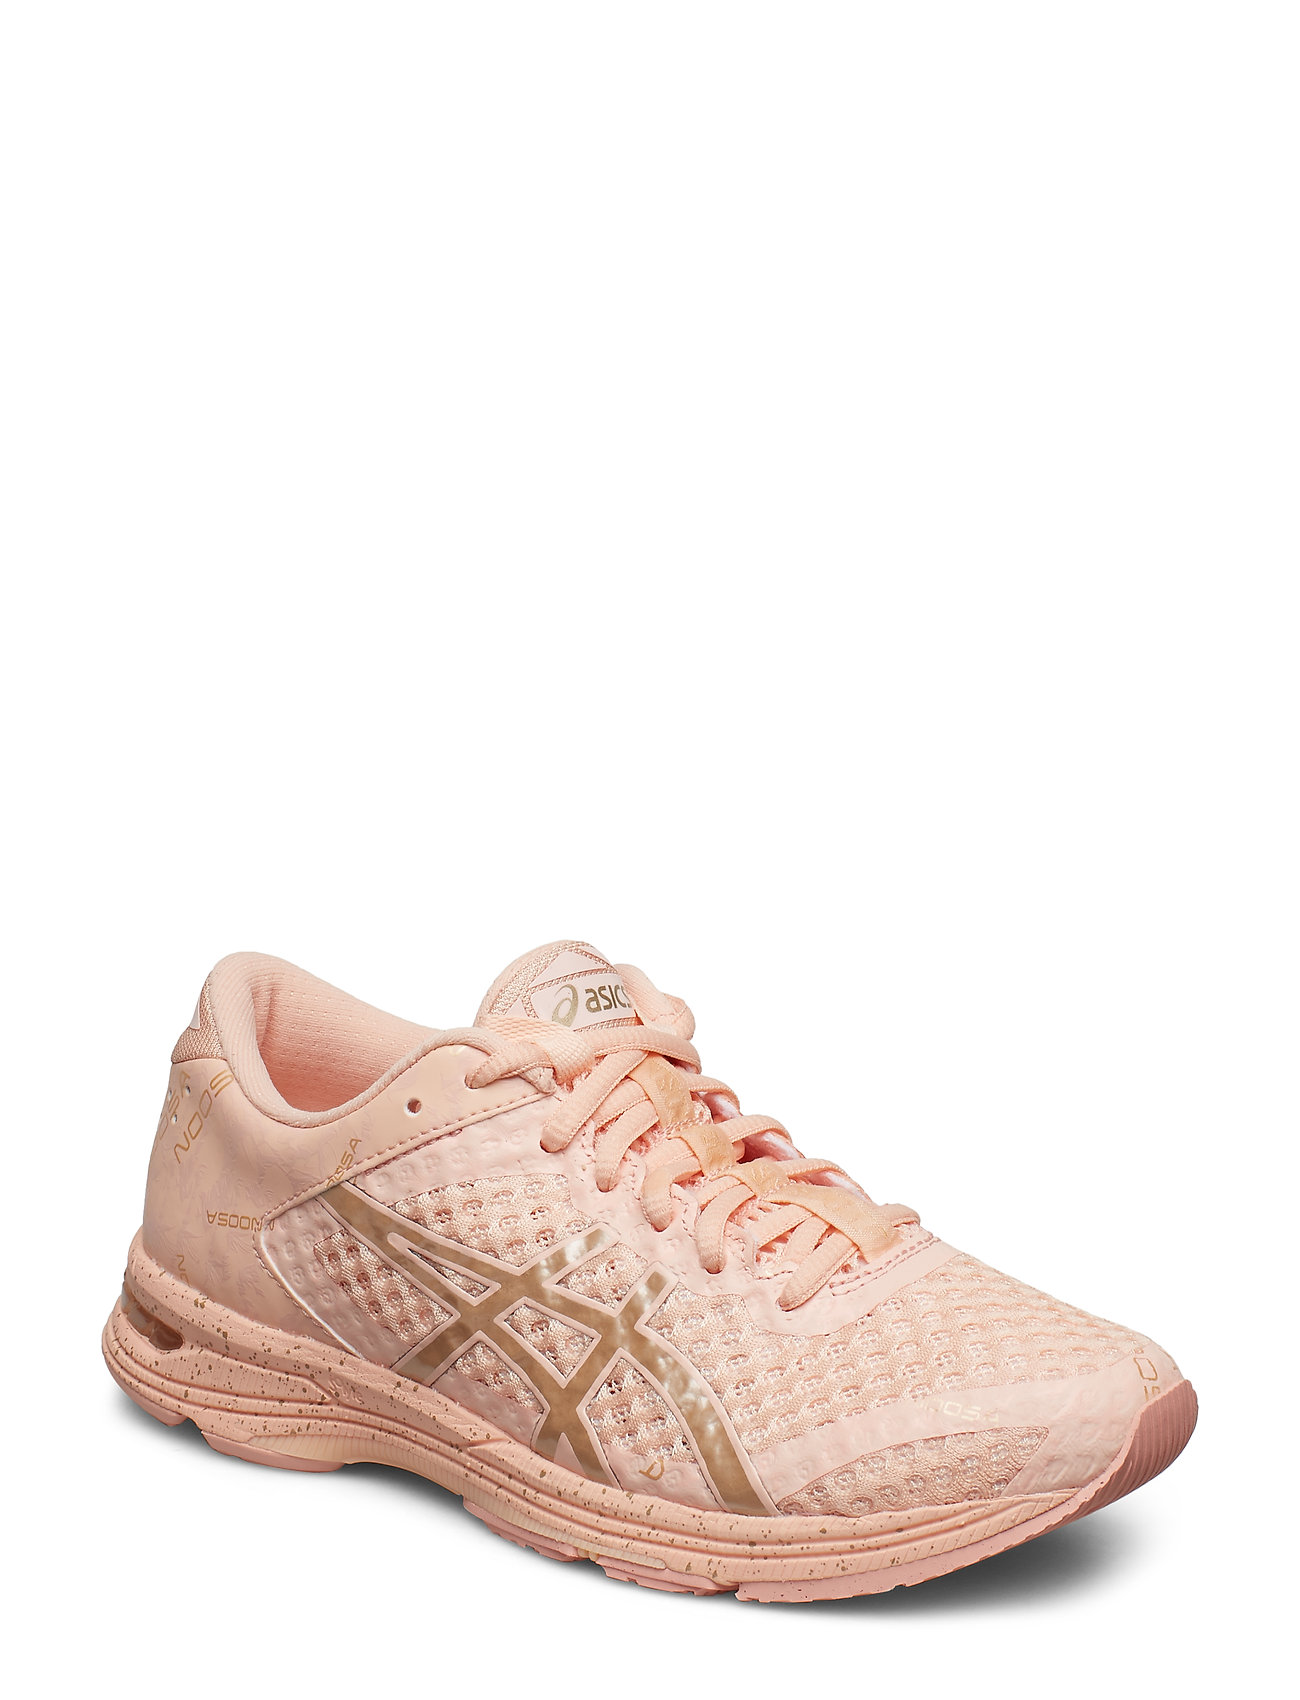 ASICS Gel-Noosa Tri 11 Shoes Sport Shoes Running Shoes Pink ASICS